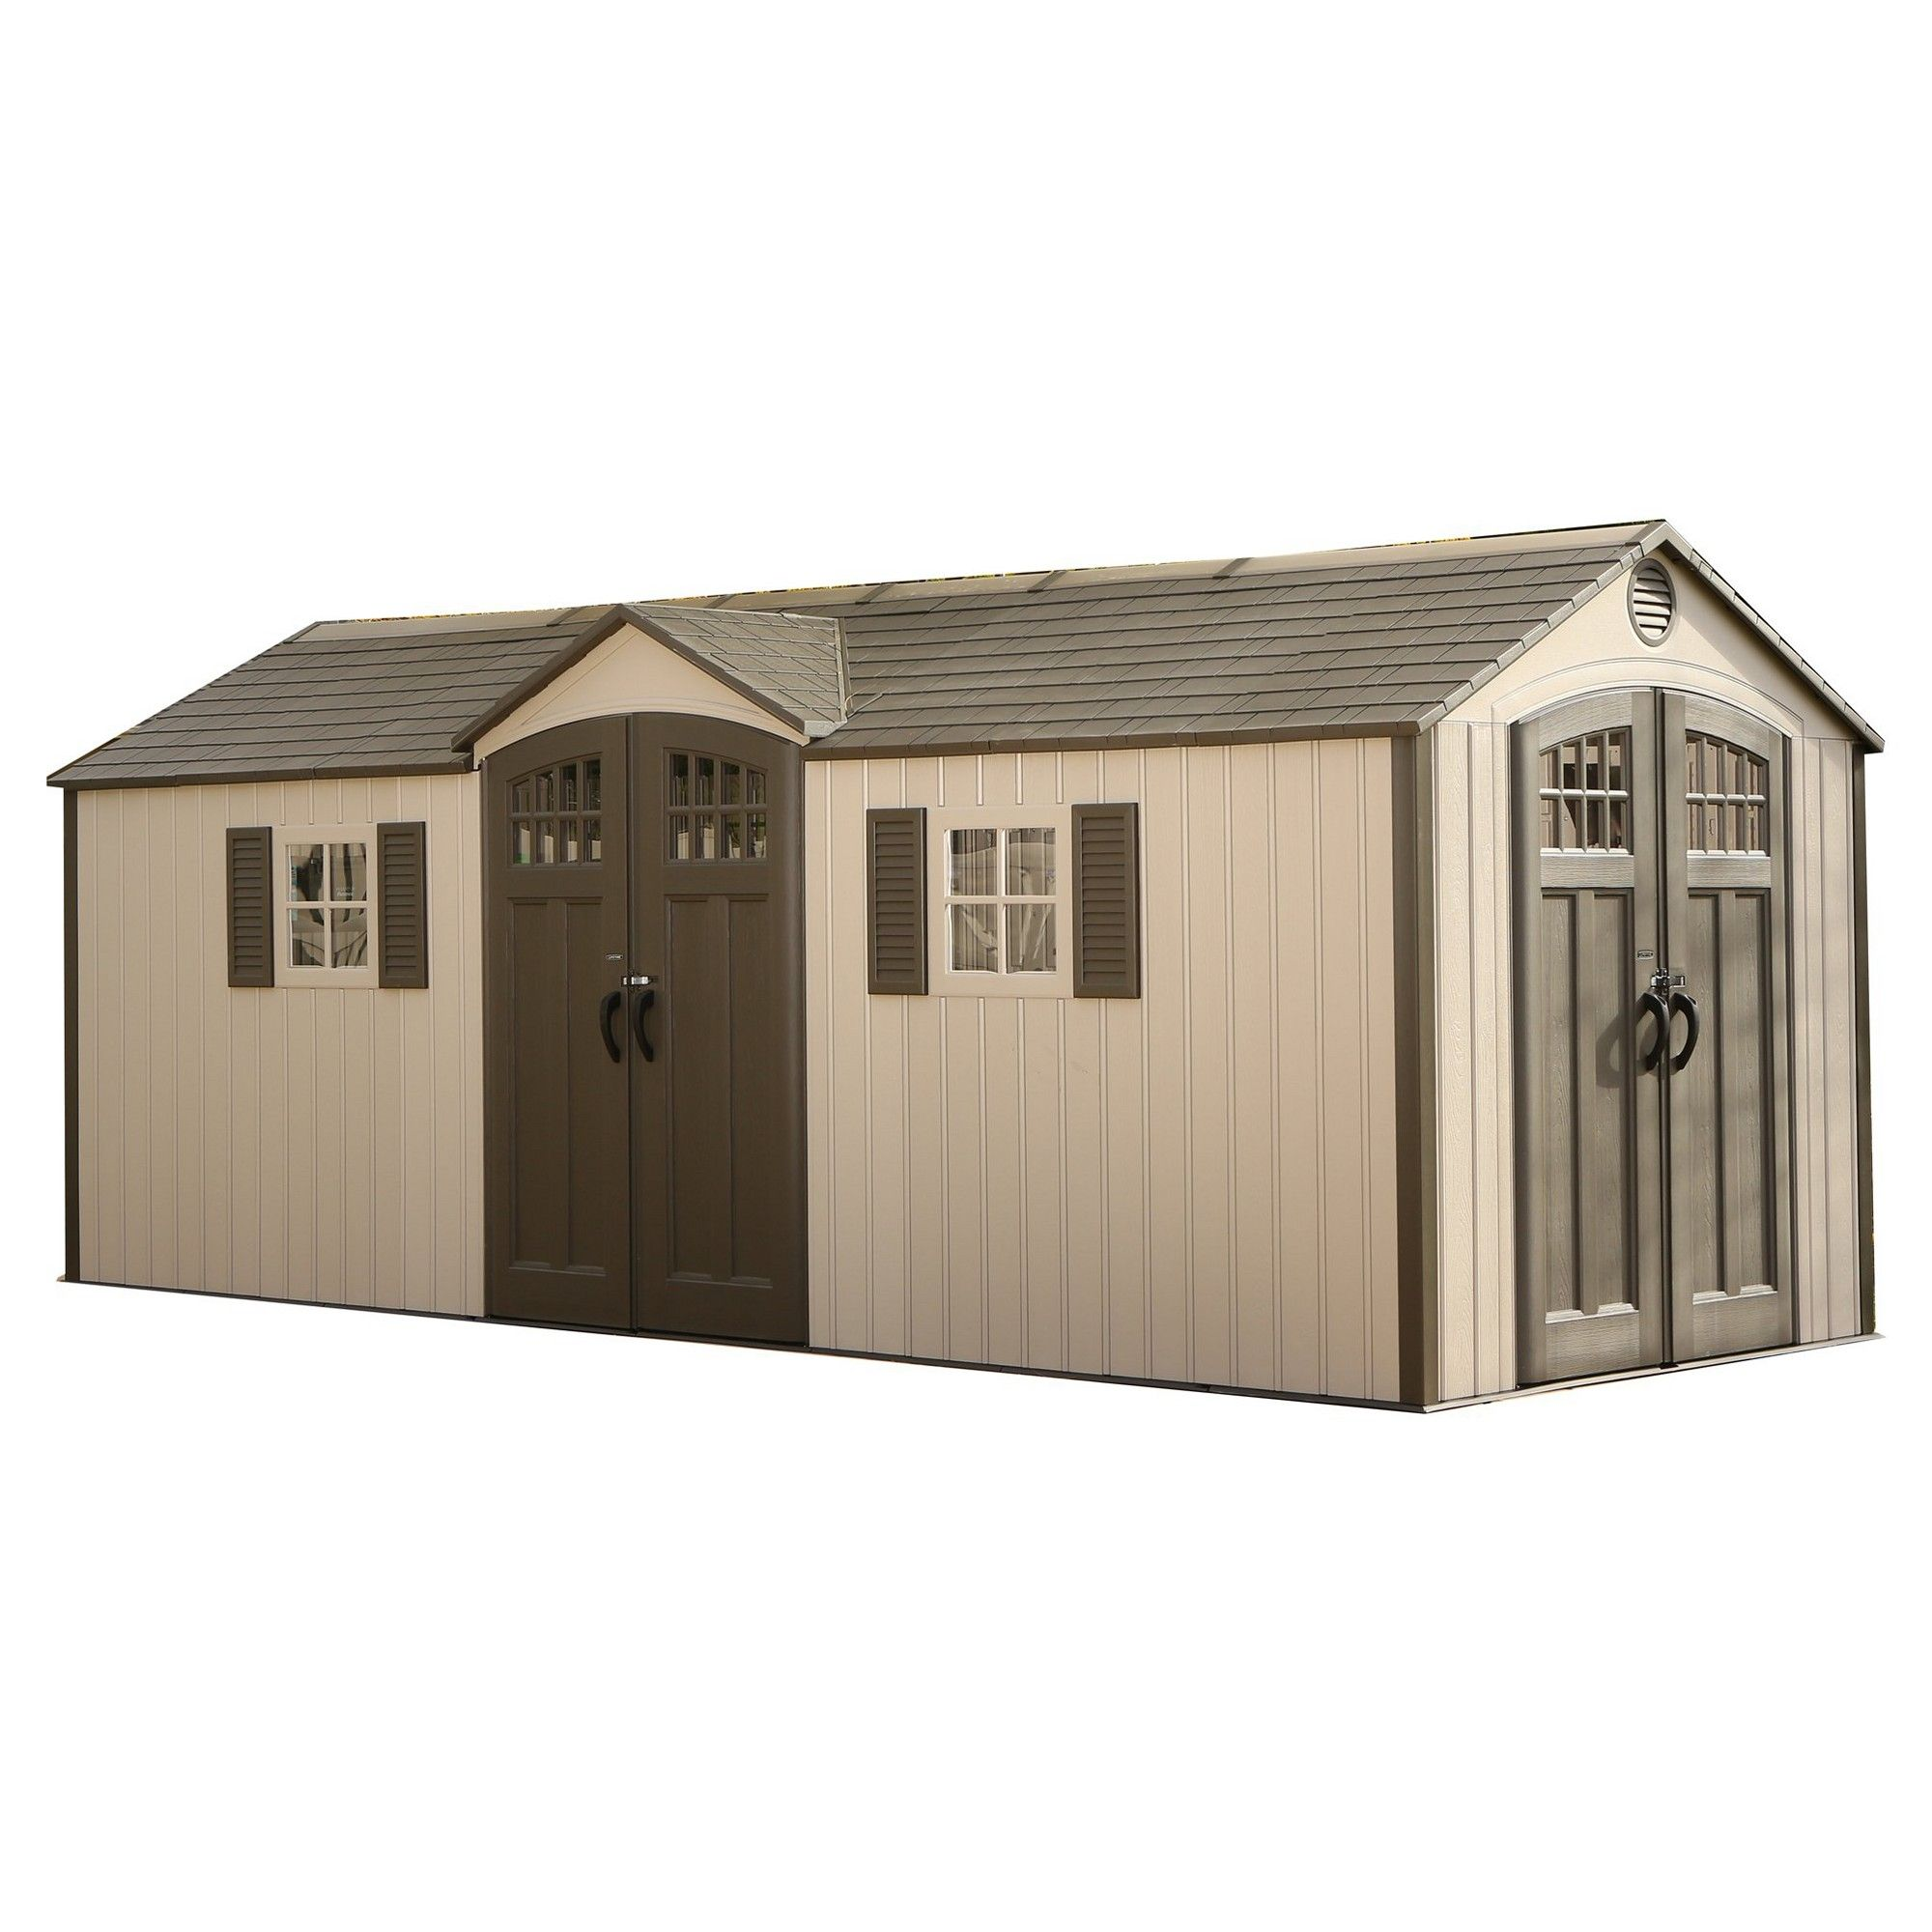 Outdoor Storage Shed 20 X 8 Desert Sand Lifetime Plastic Sheds